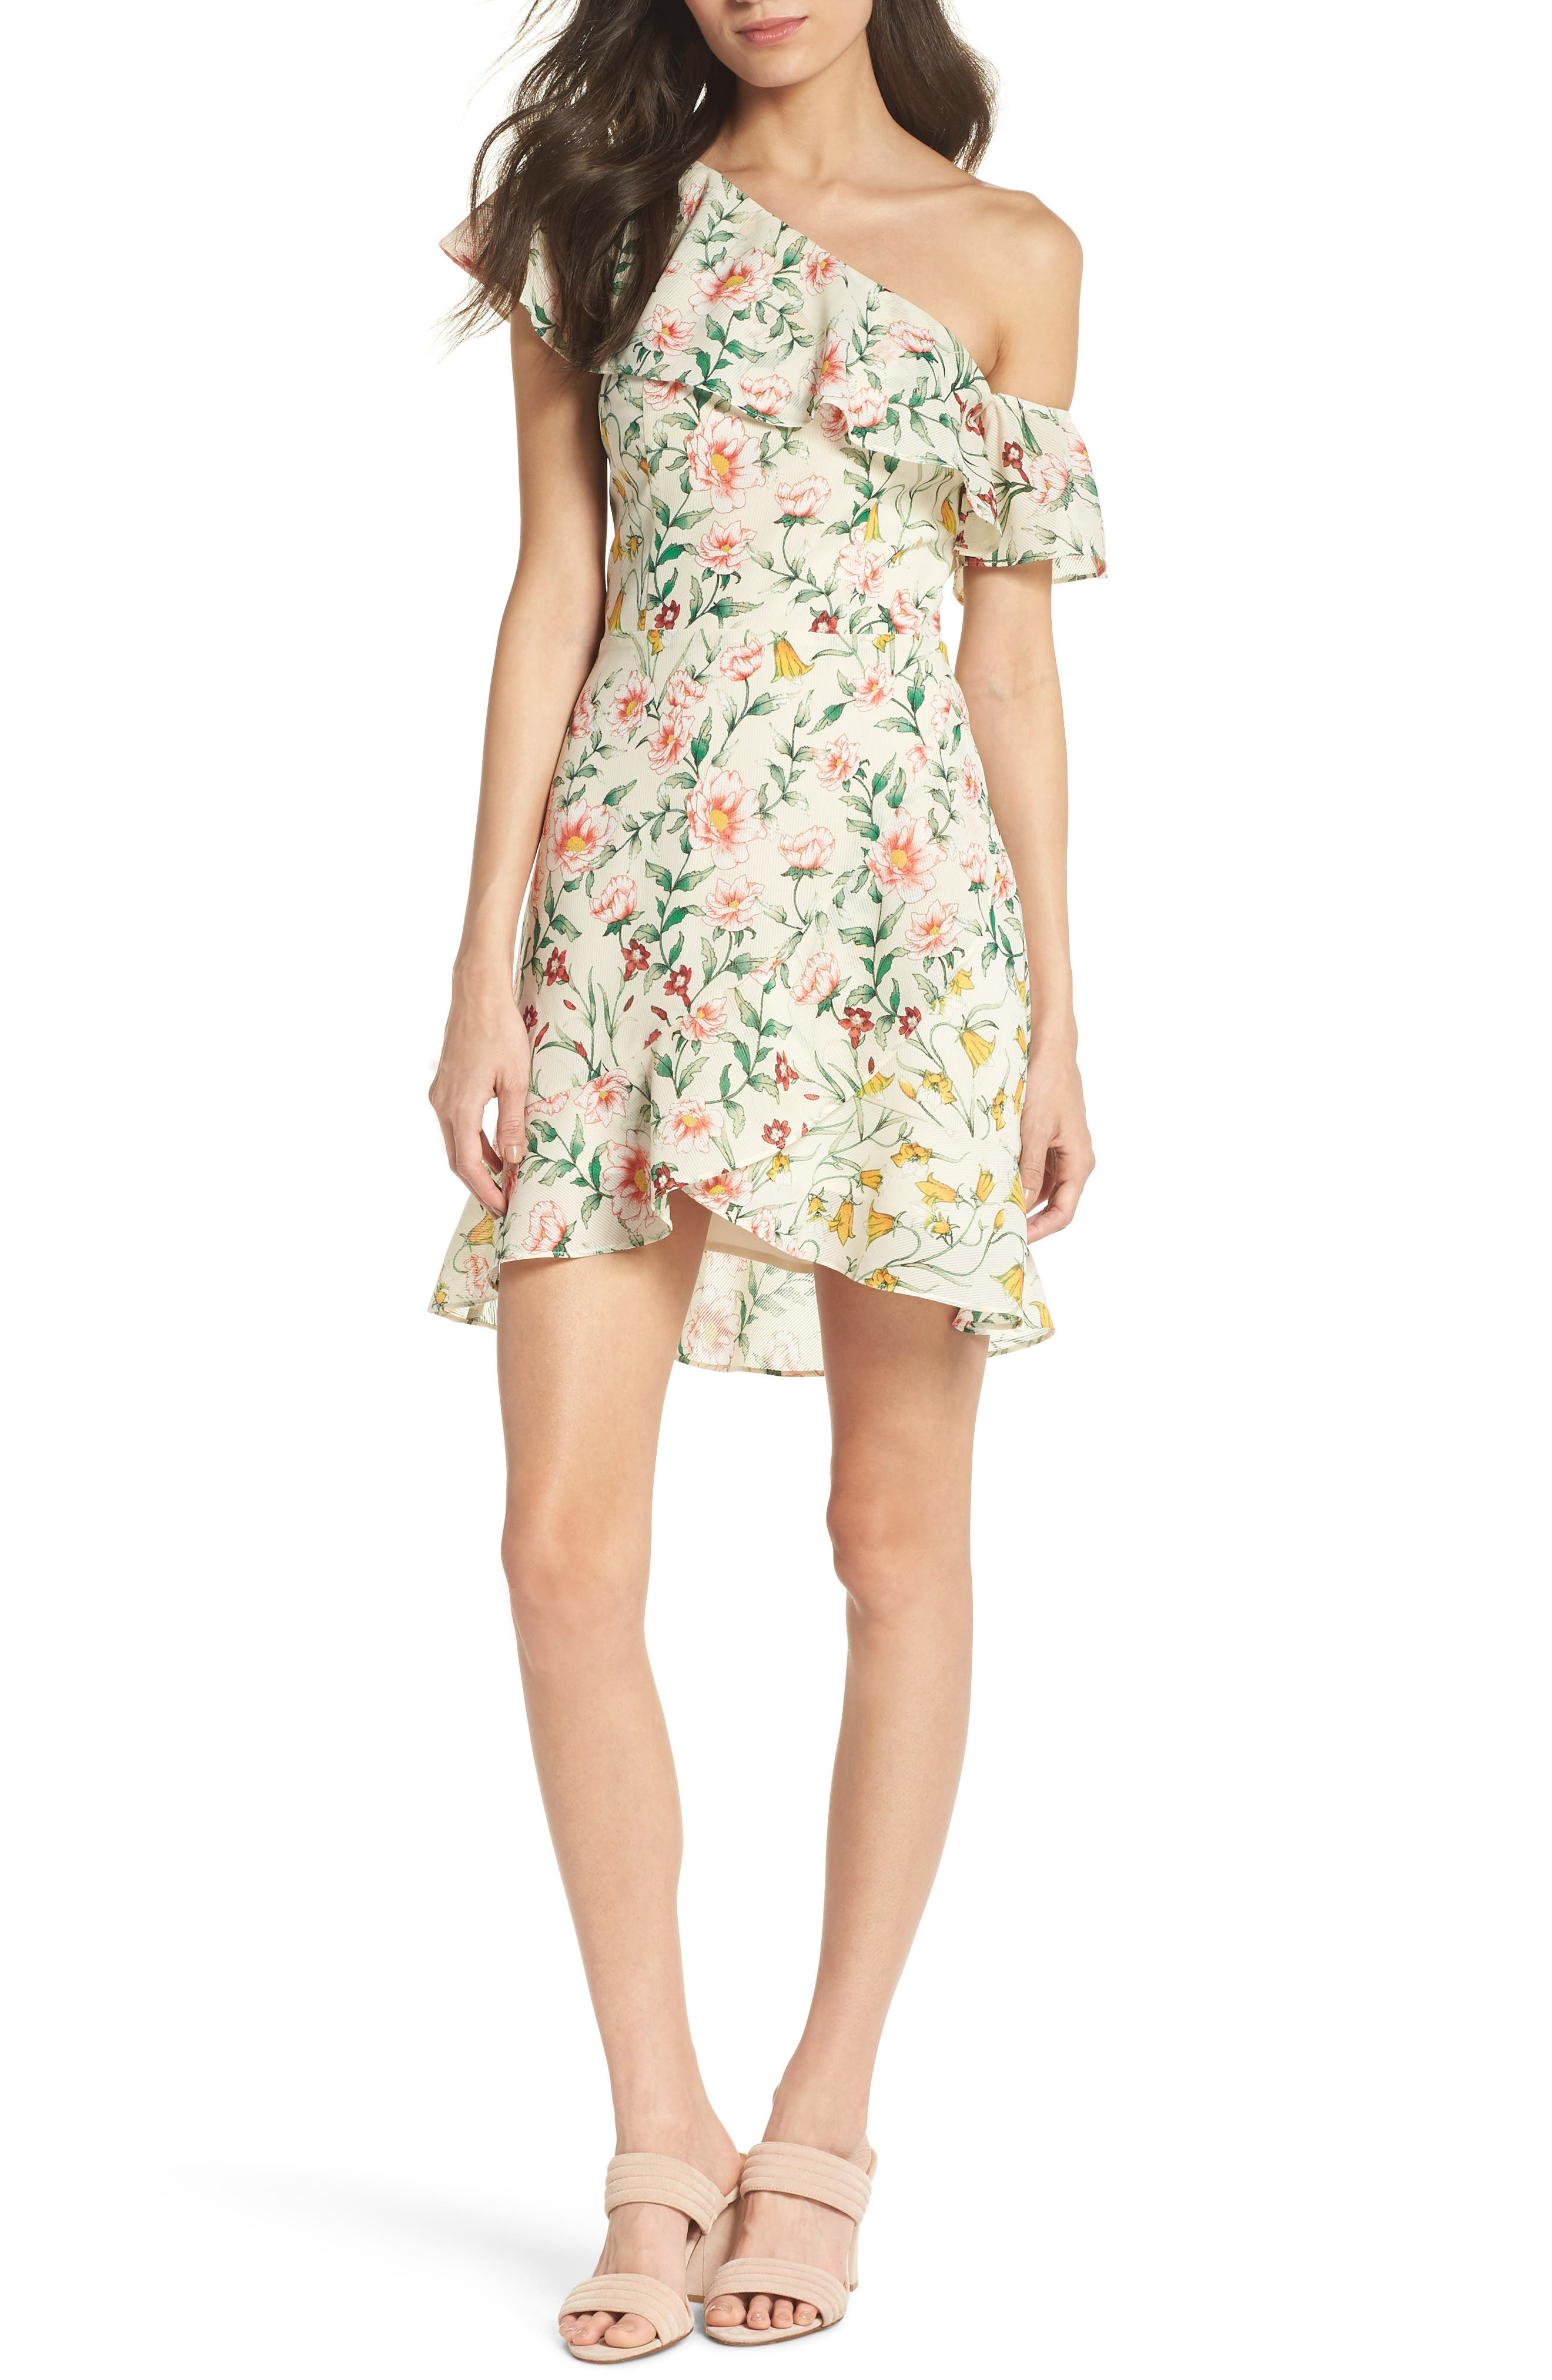 Zinque Afternoons One Shoulder Dress by Ali & Jay